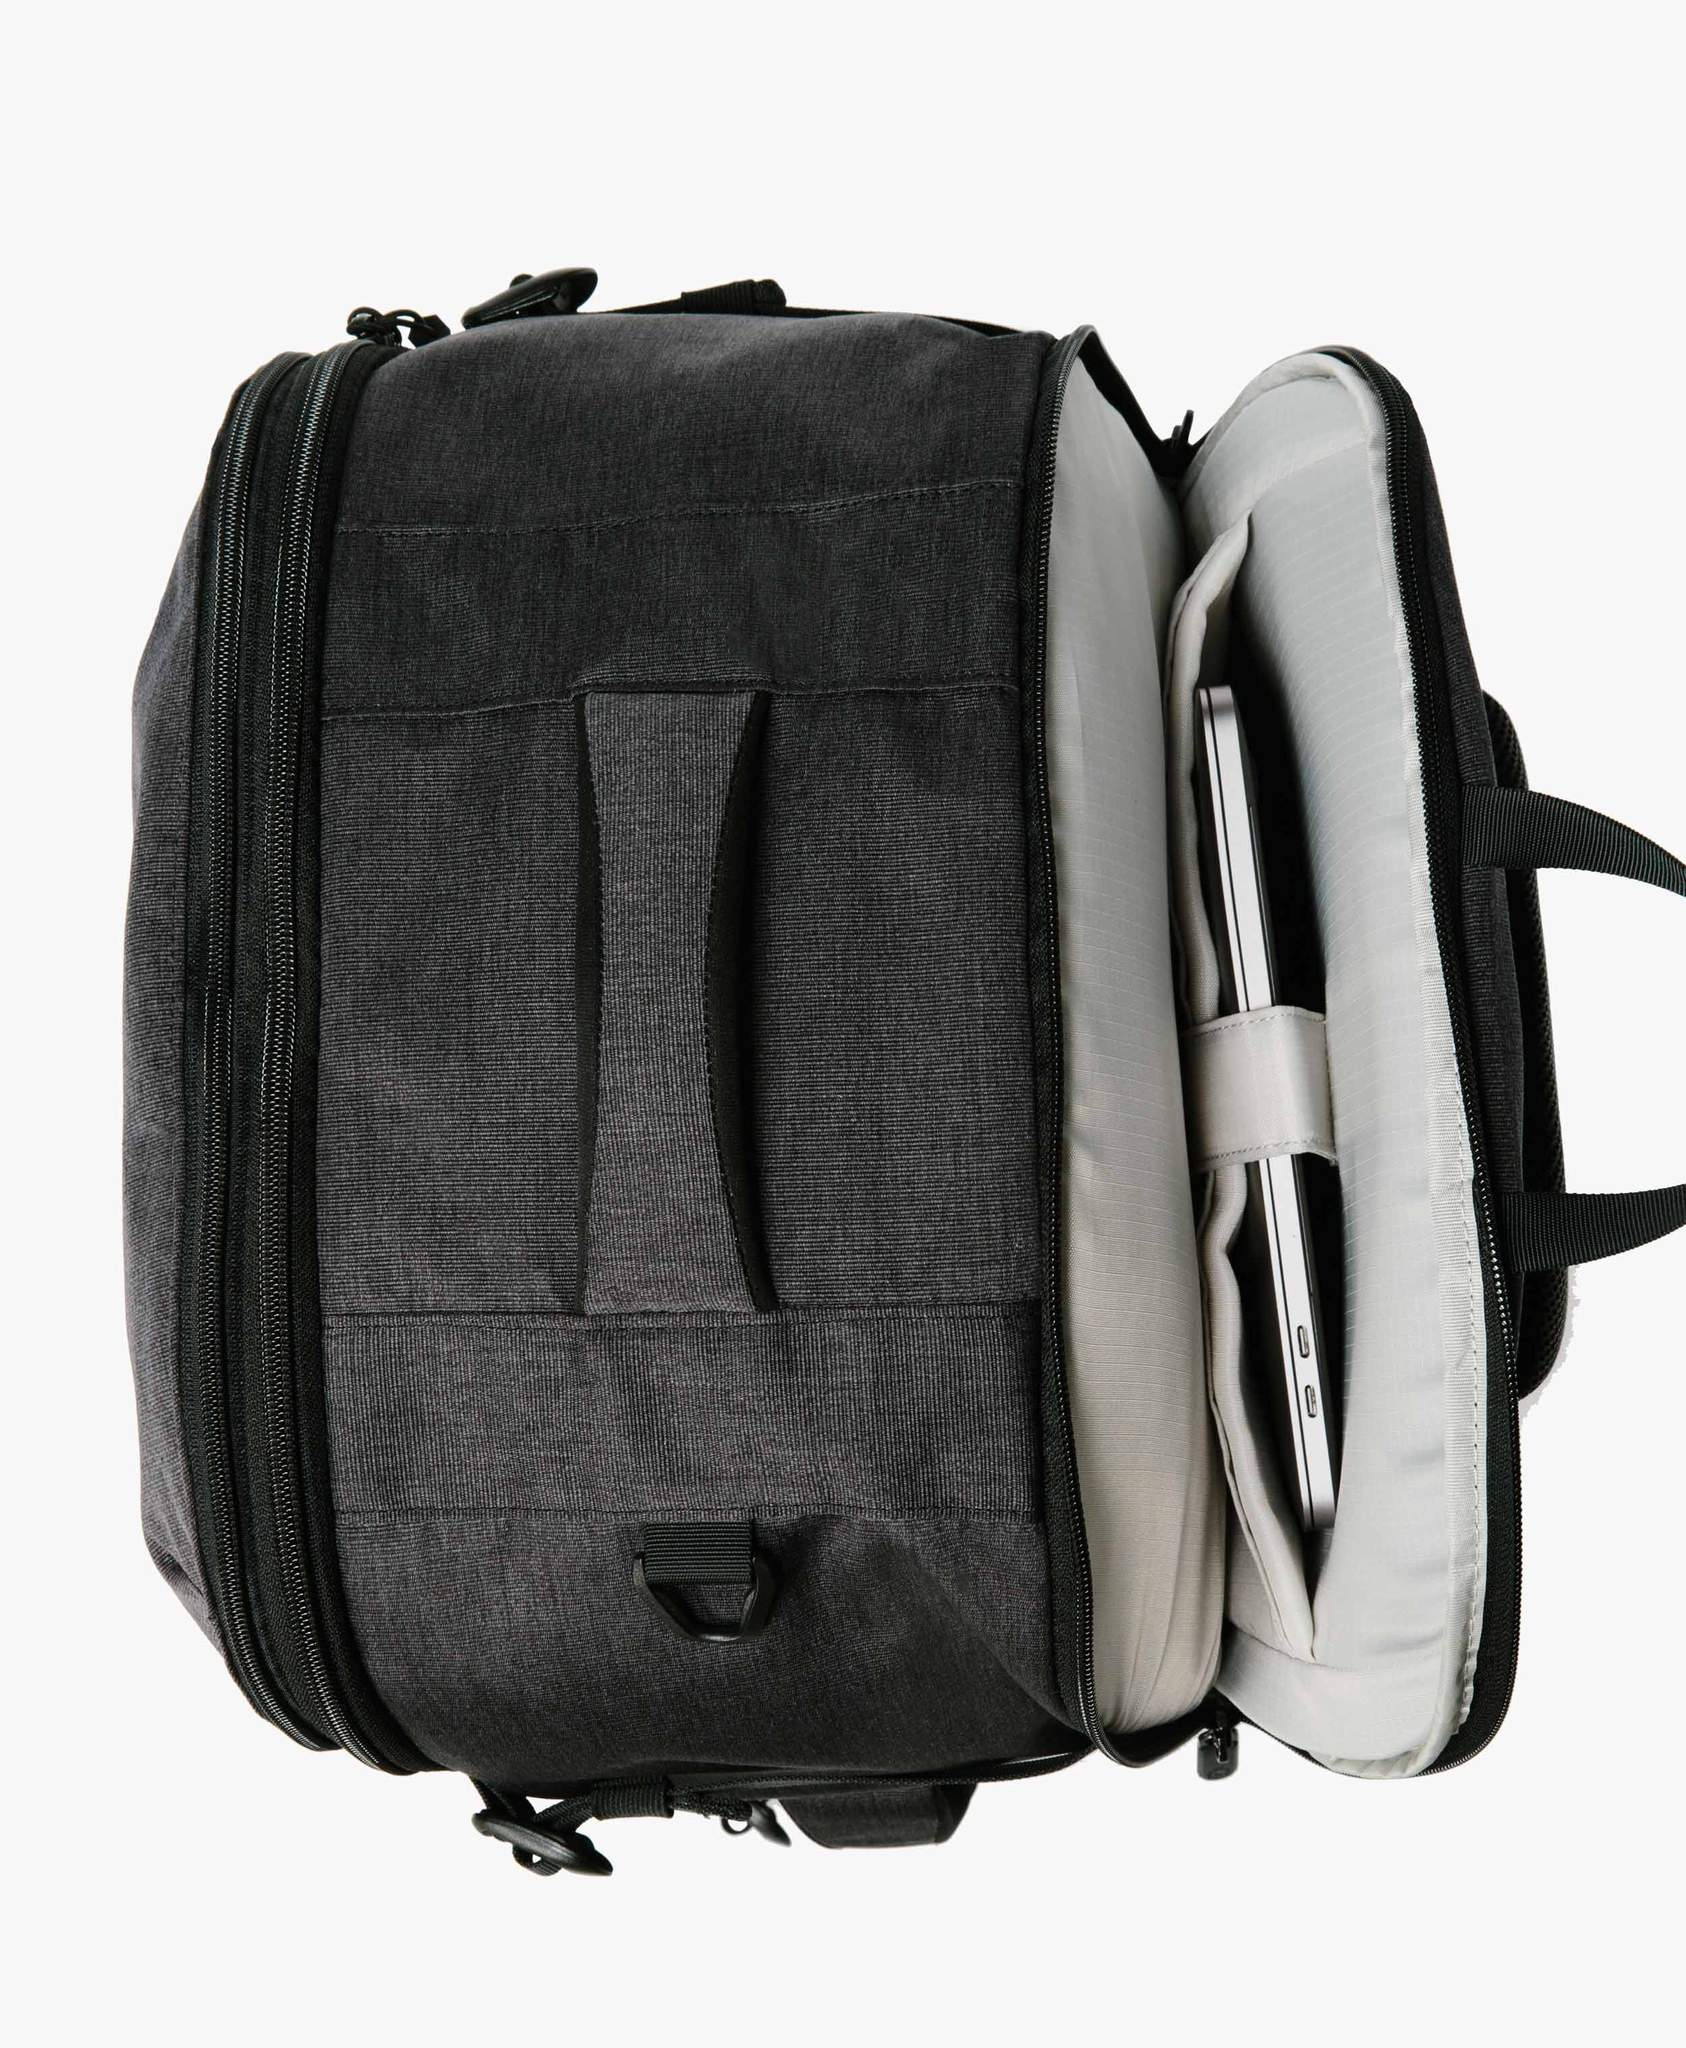 1686x2048 Setout Travel Backpack The Carry On For City Travelers